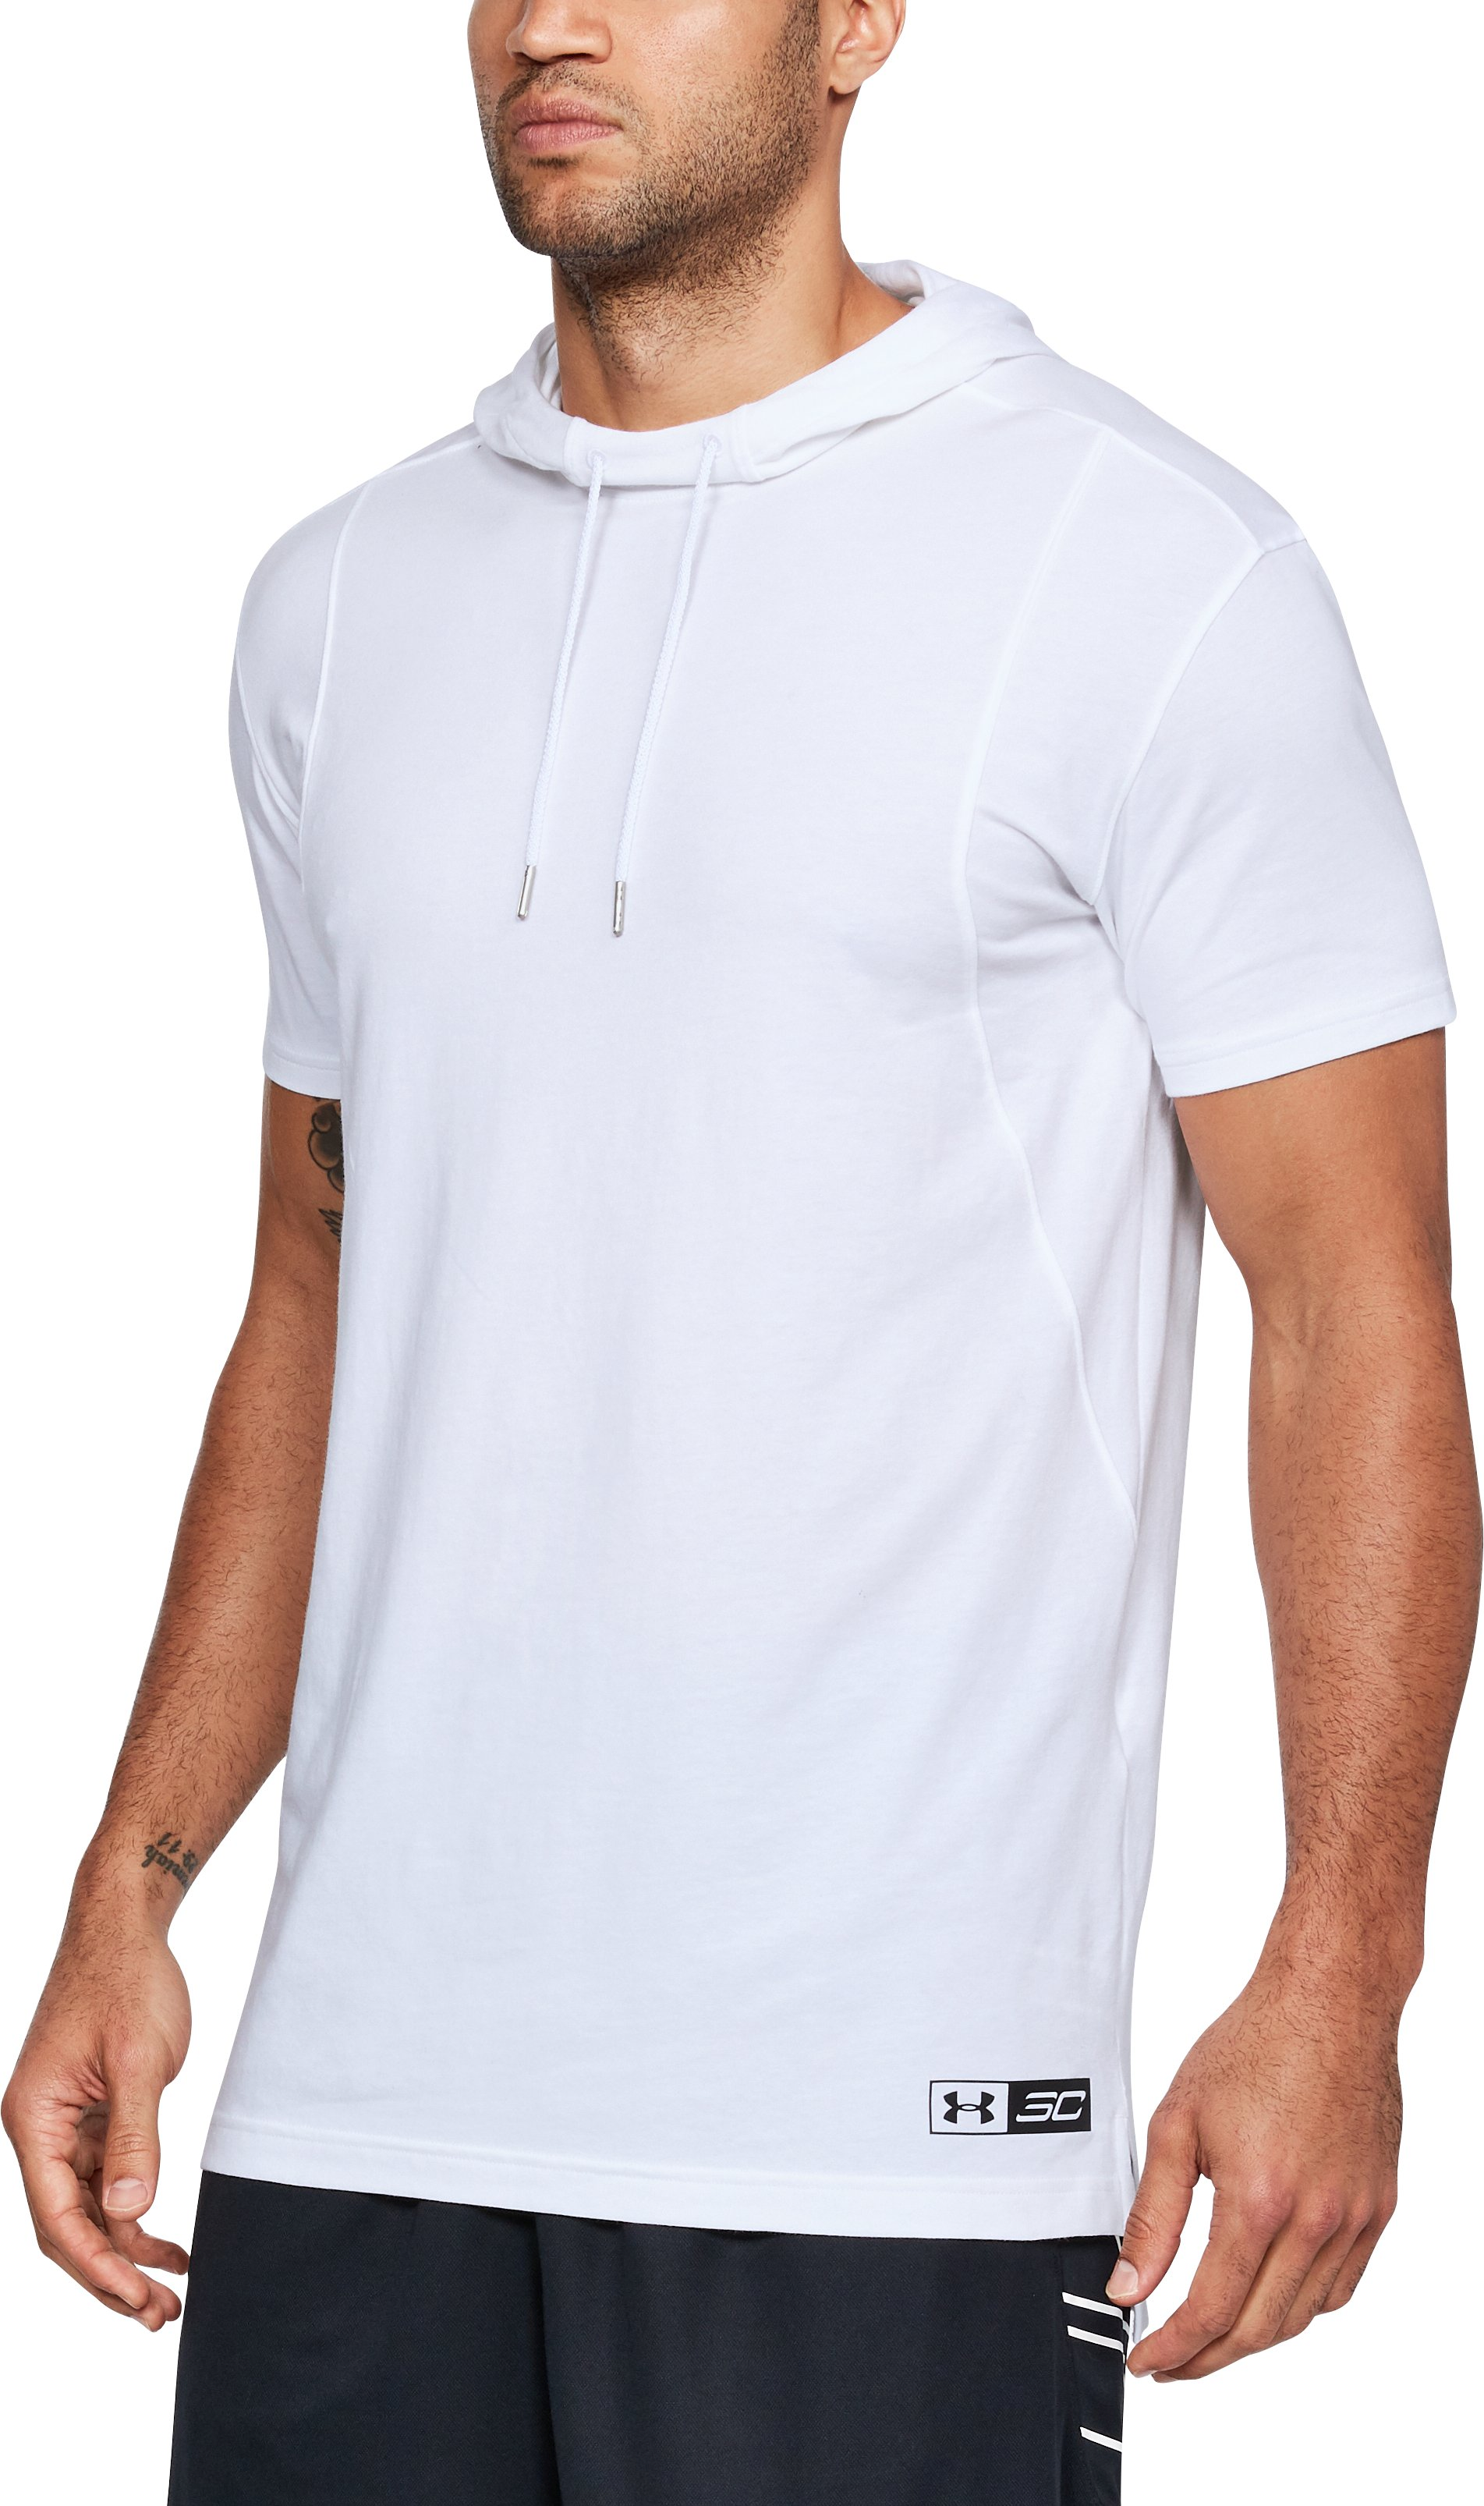 Men's SC30 Short Sleeve Hooded T-Shirt, White